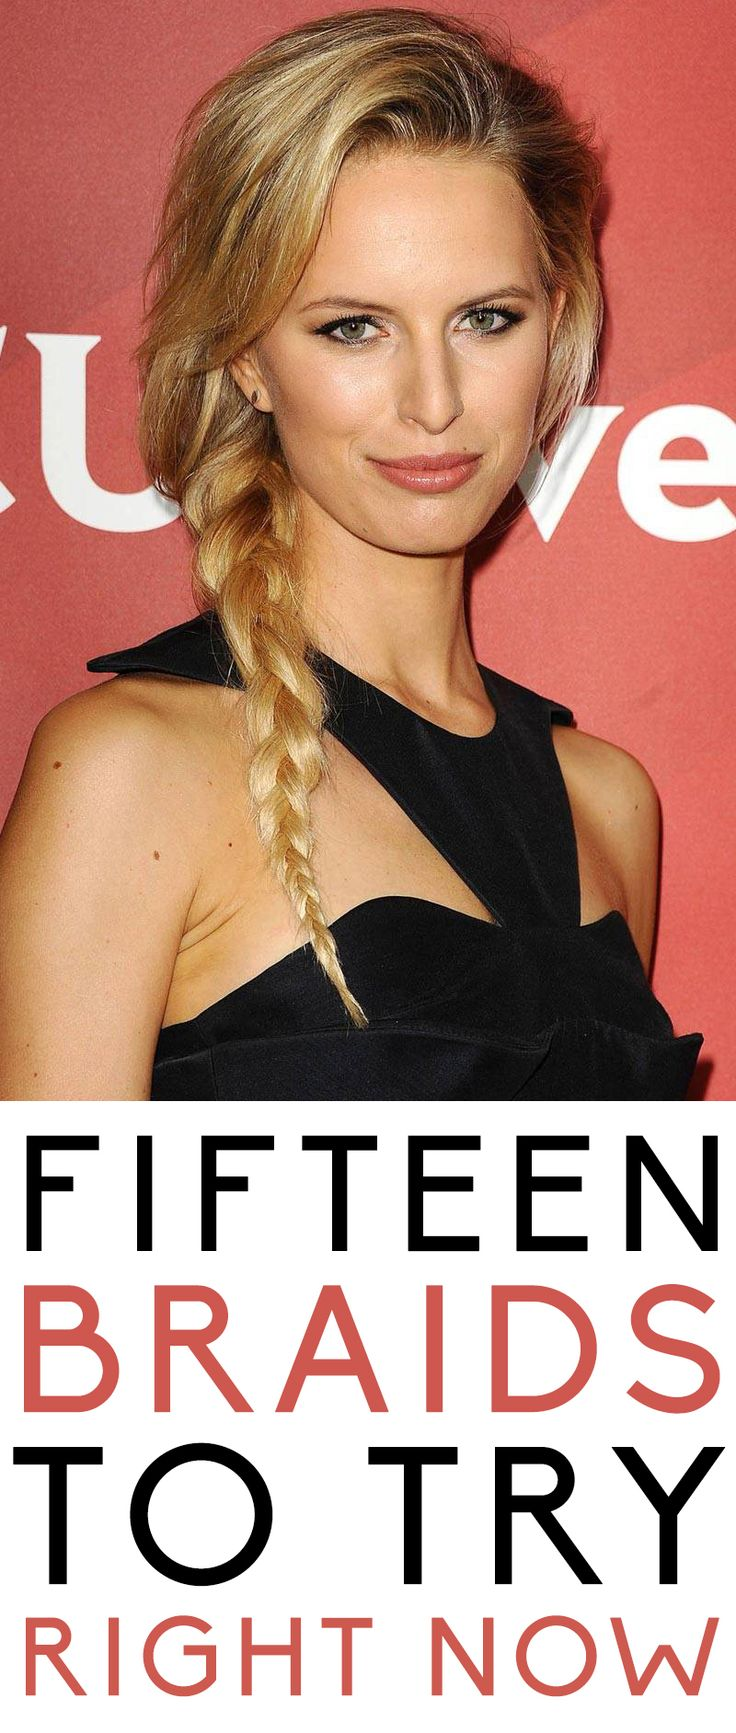 15 braids to try right now.